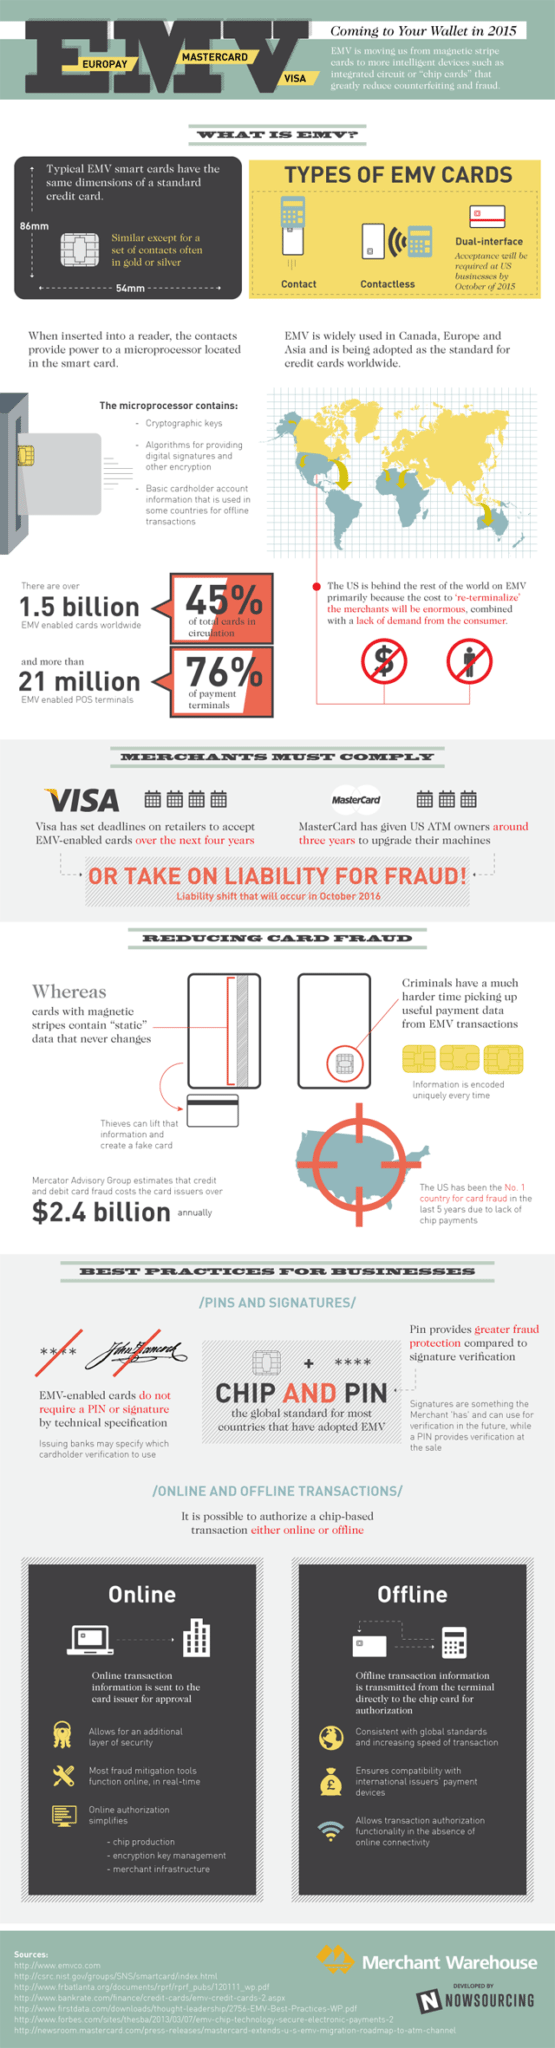 EMV Coming to Your Wallet - Infographic